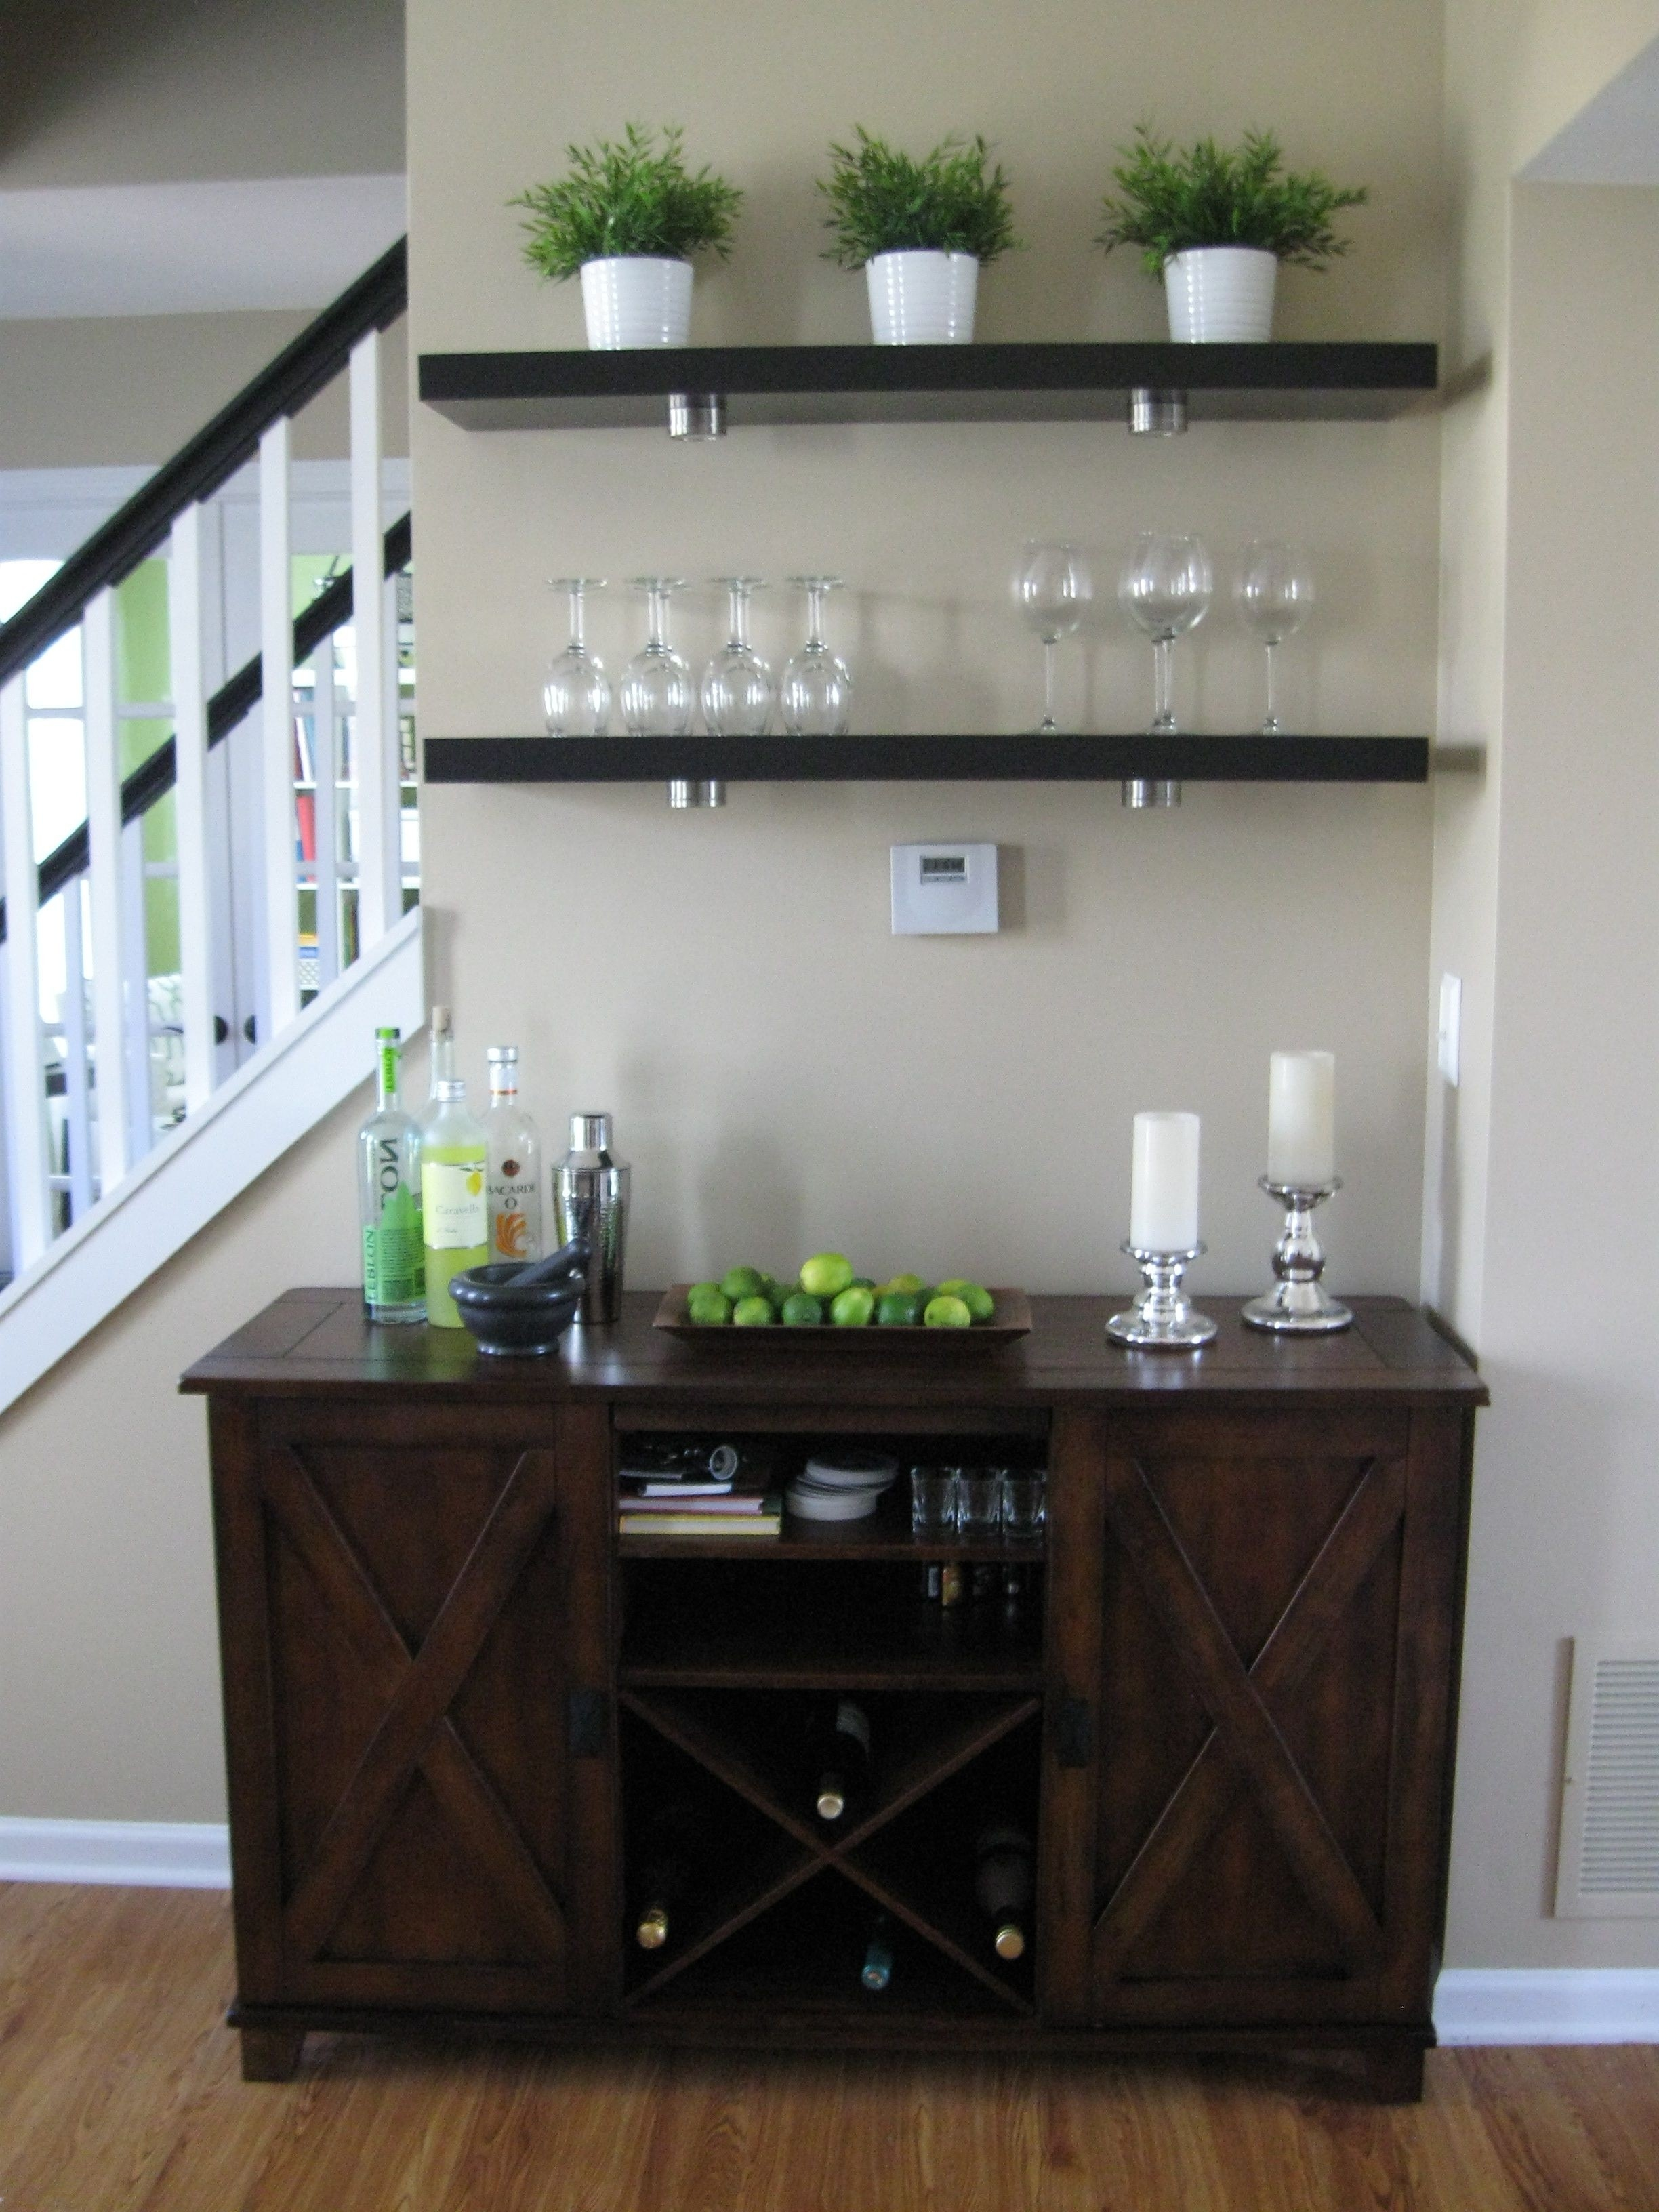 Mini Bars For Home For 2020 Ideas On Foter | Mini Bar Design Under Stairs | Stairs Cupboard | Basement Remodeling | Wine | Storage | Basement Stairs Ideas